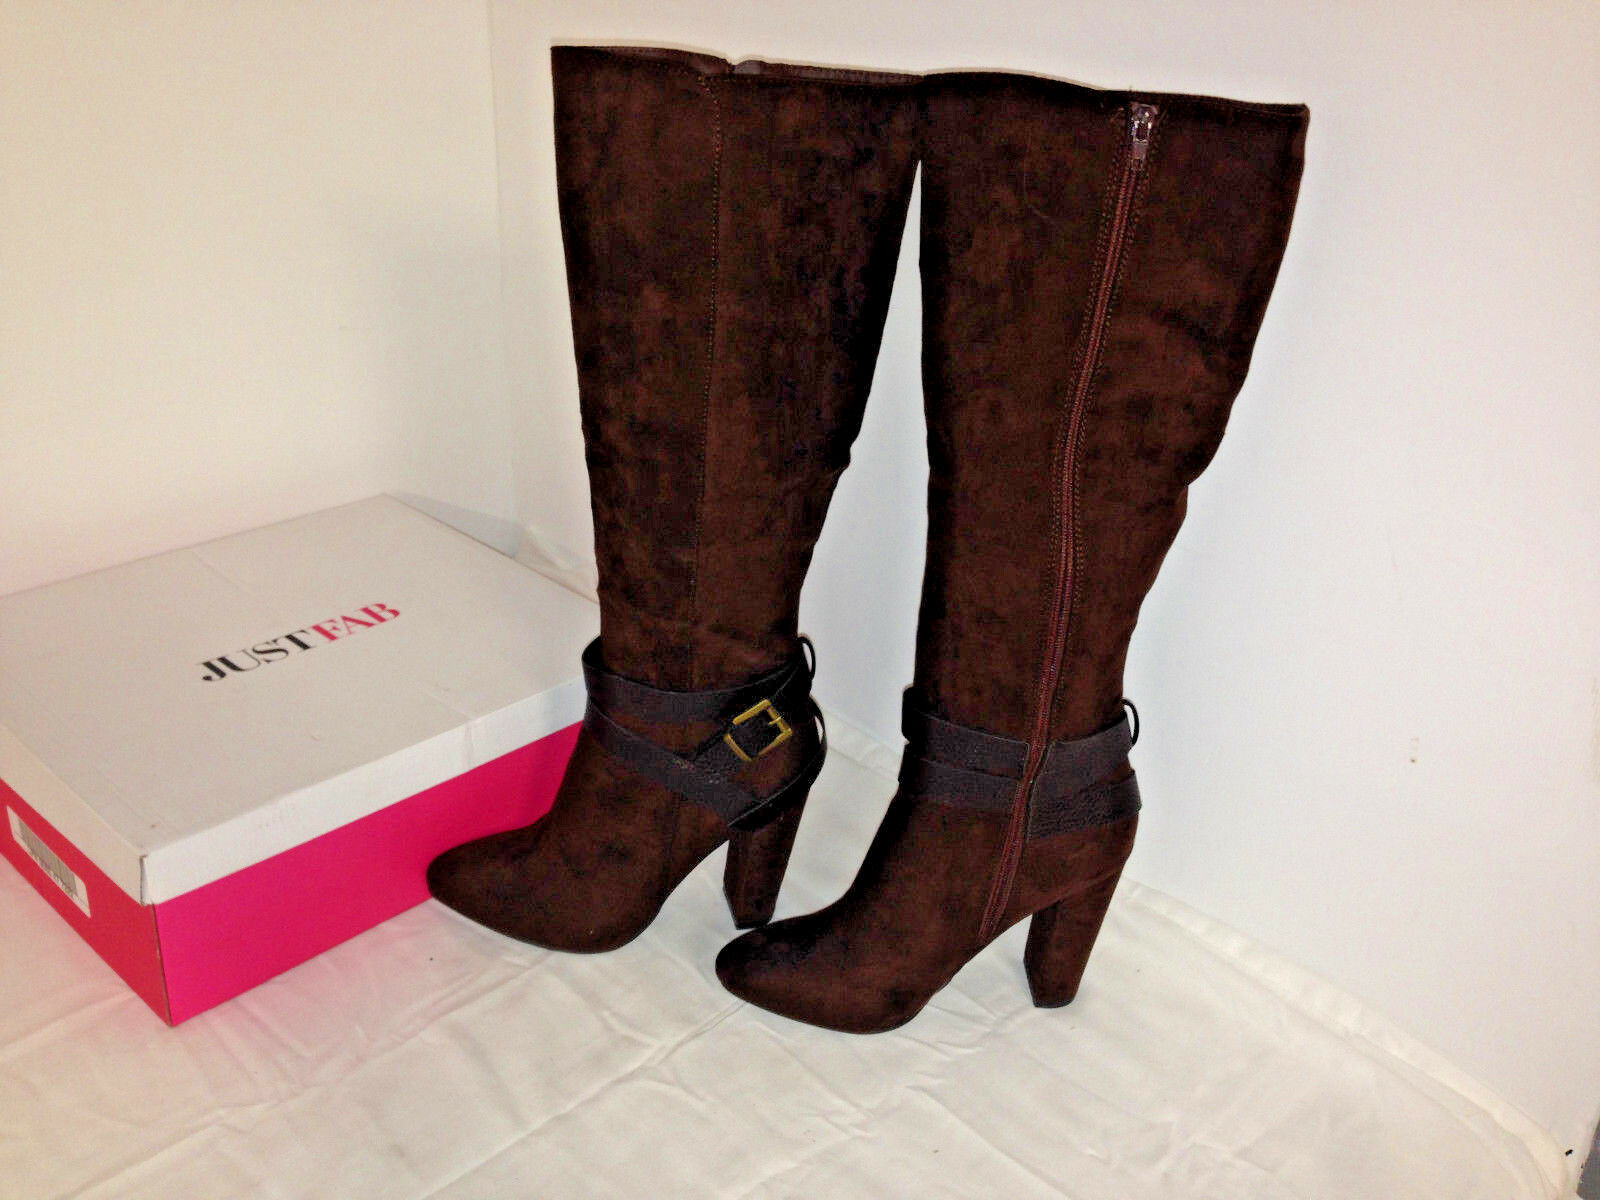 Women's ~Just Fab DOSHA Knee High Boots - Color Tobacco~ Size 8.5